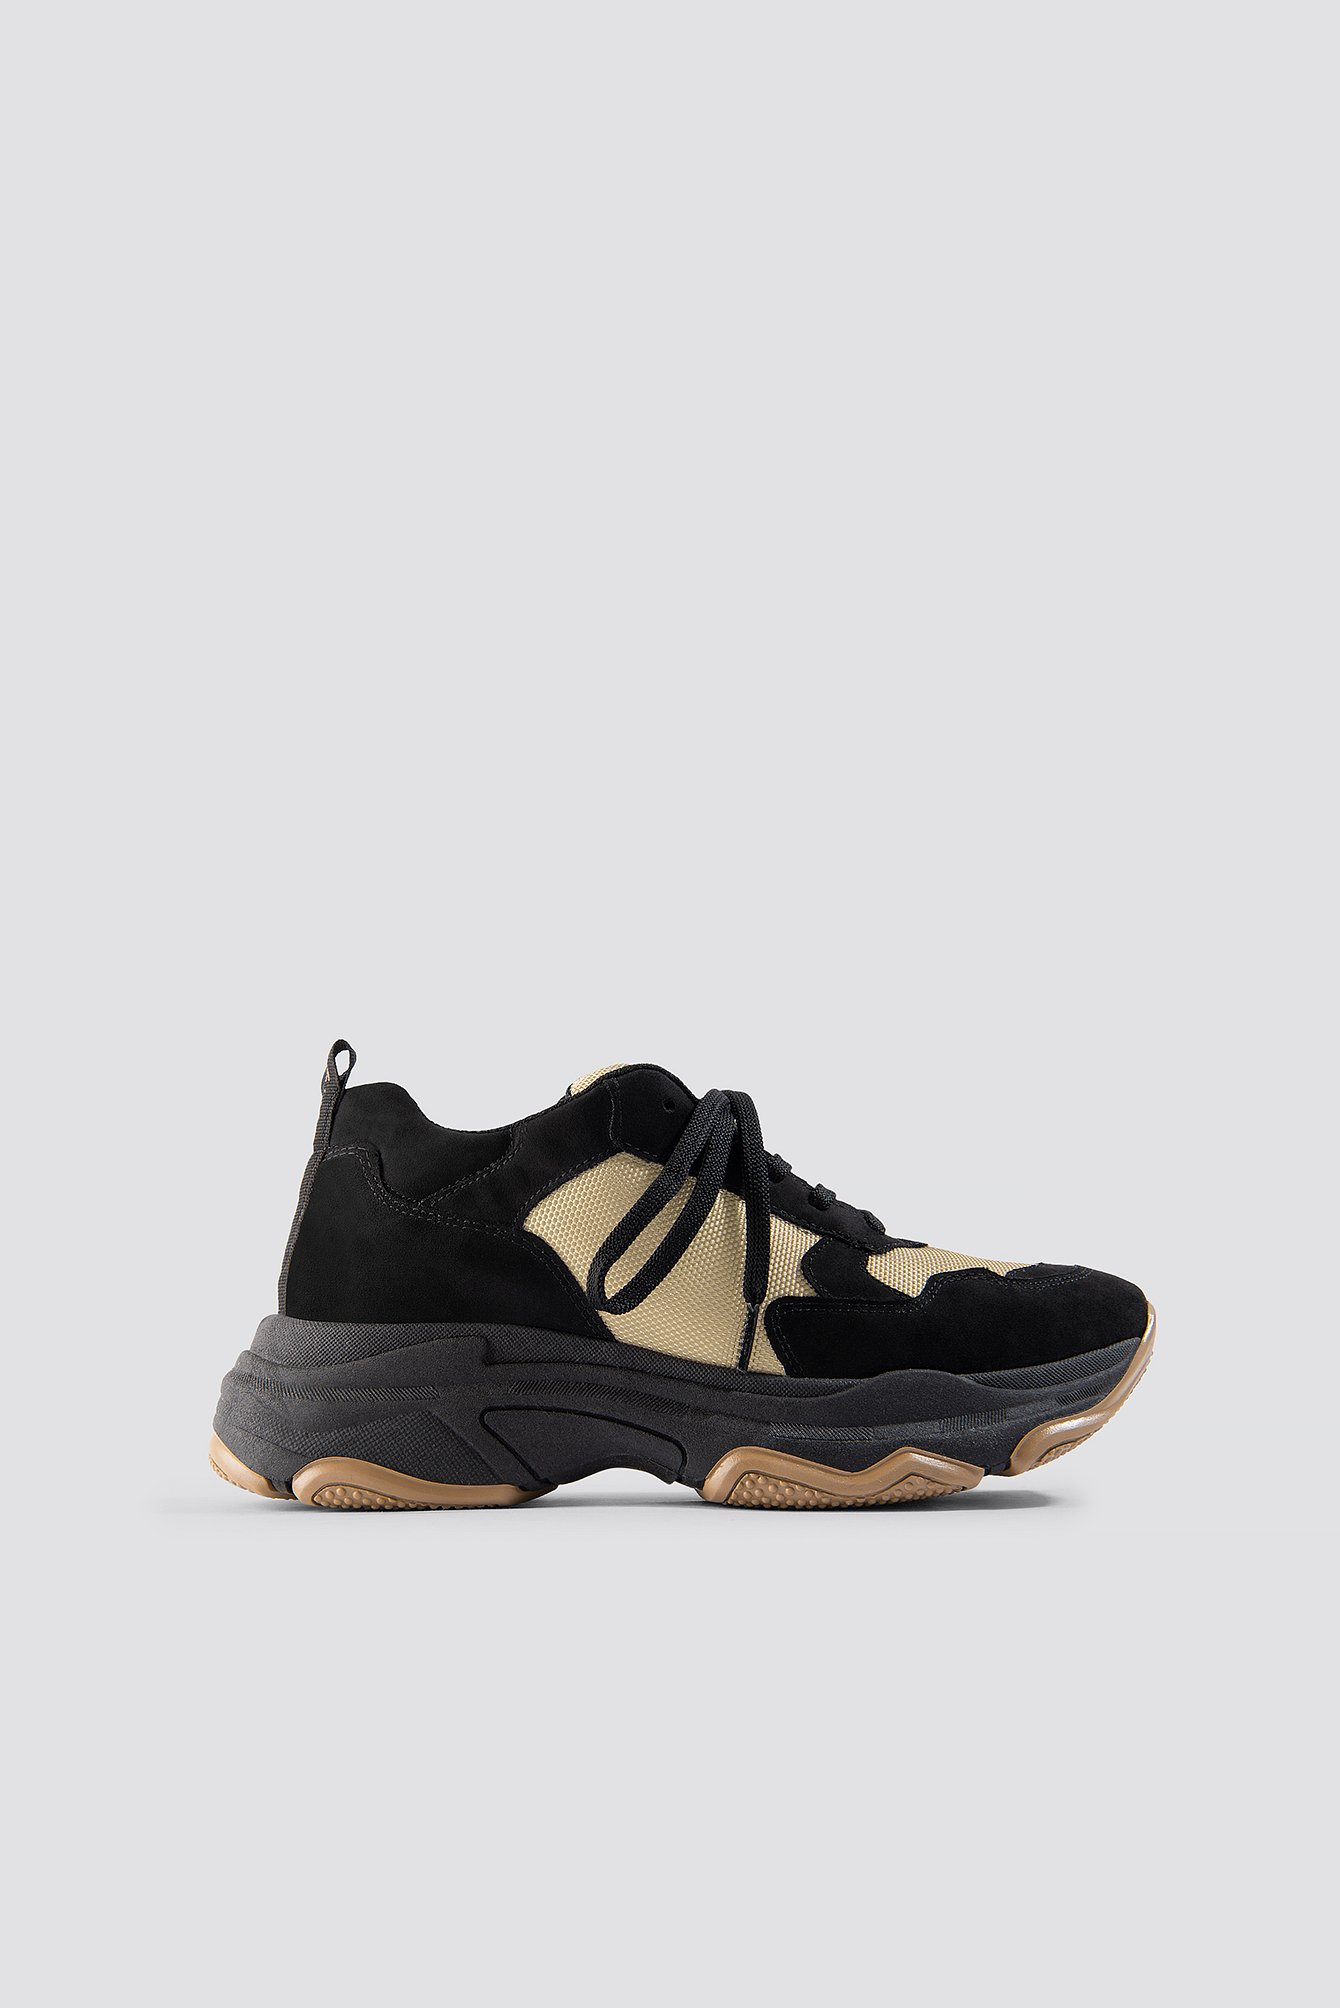 na-kd shoes -  NA-KD Chunky Trainers - Black,Beige